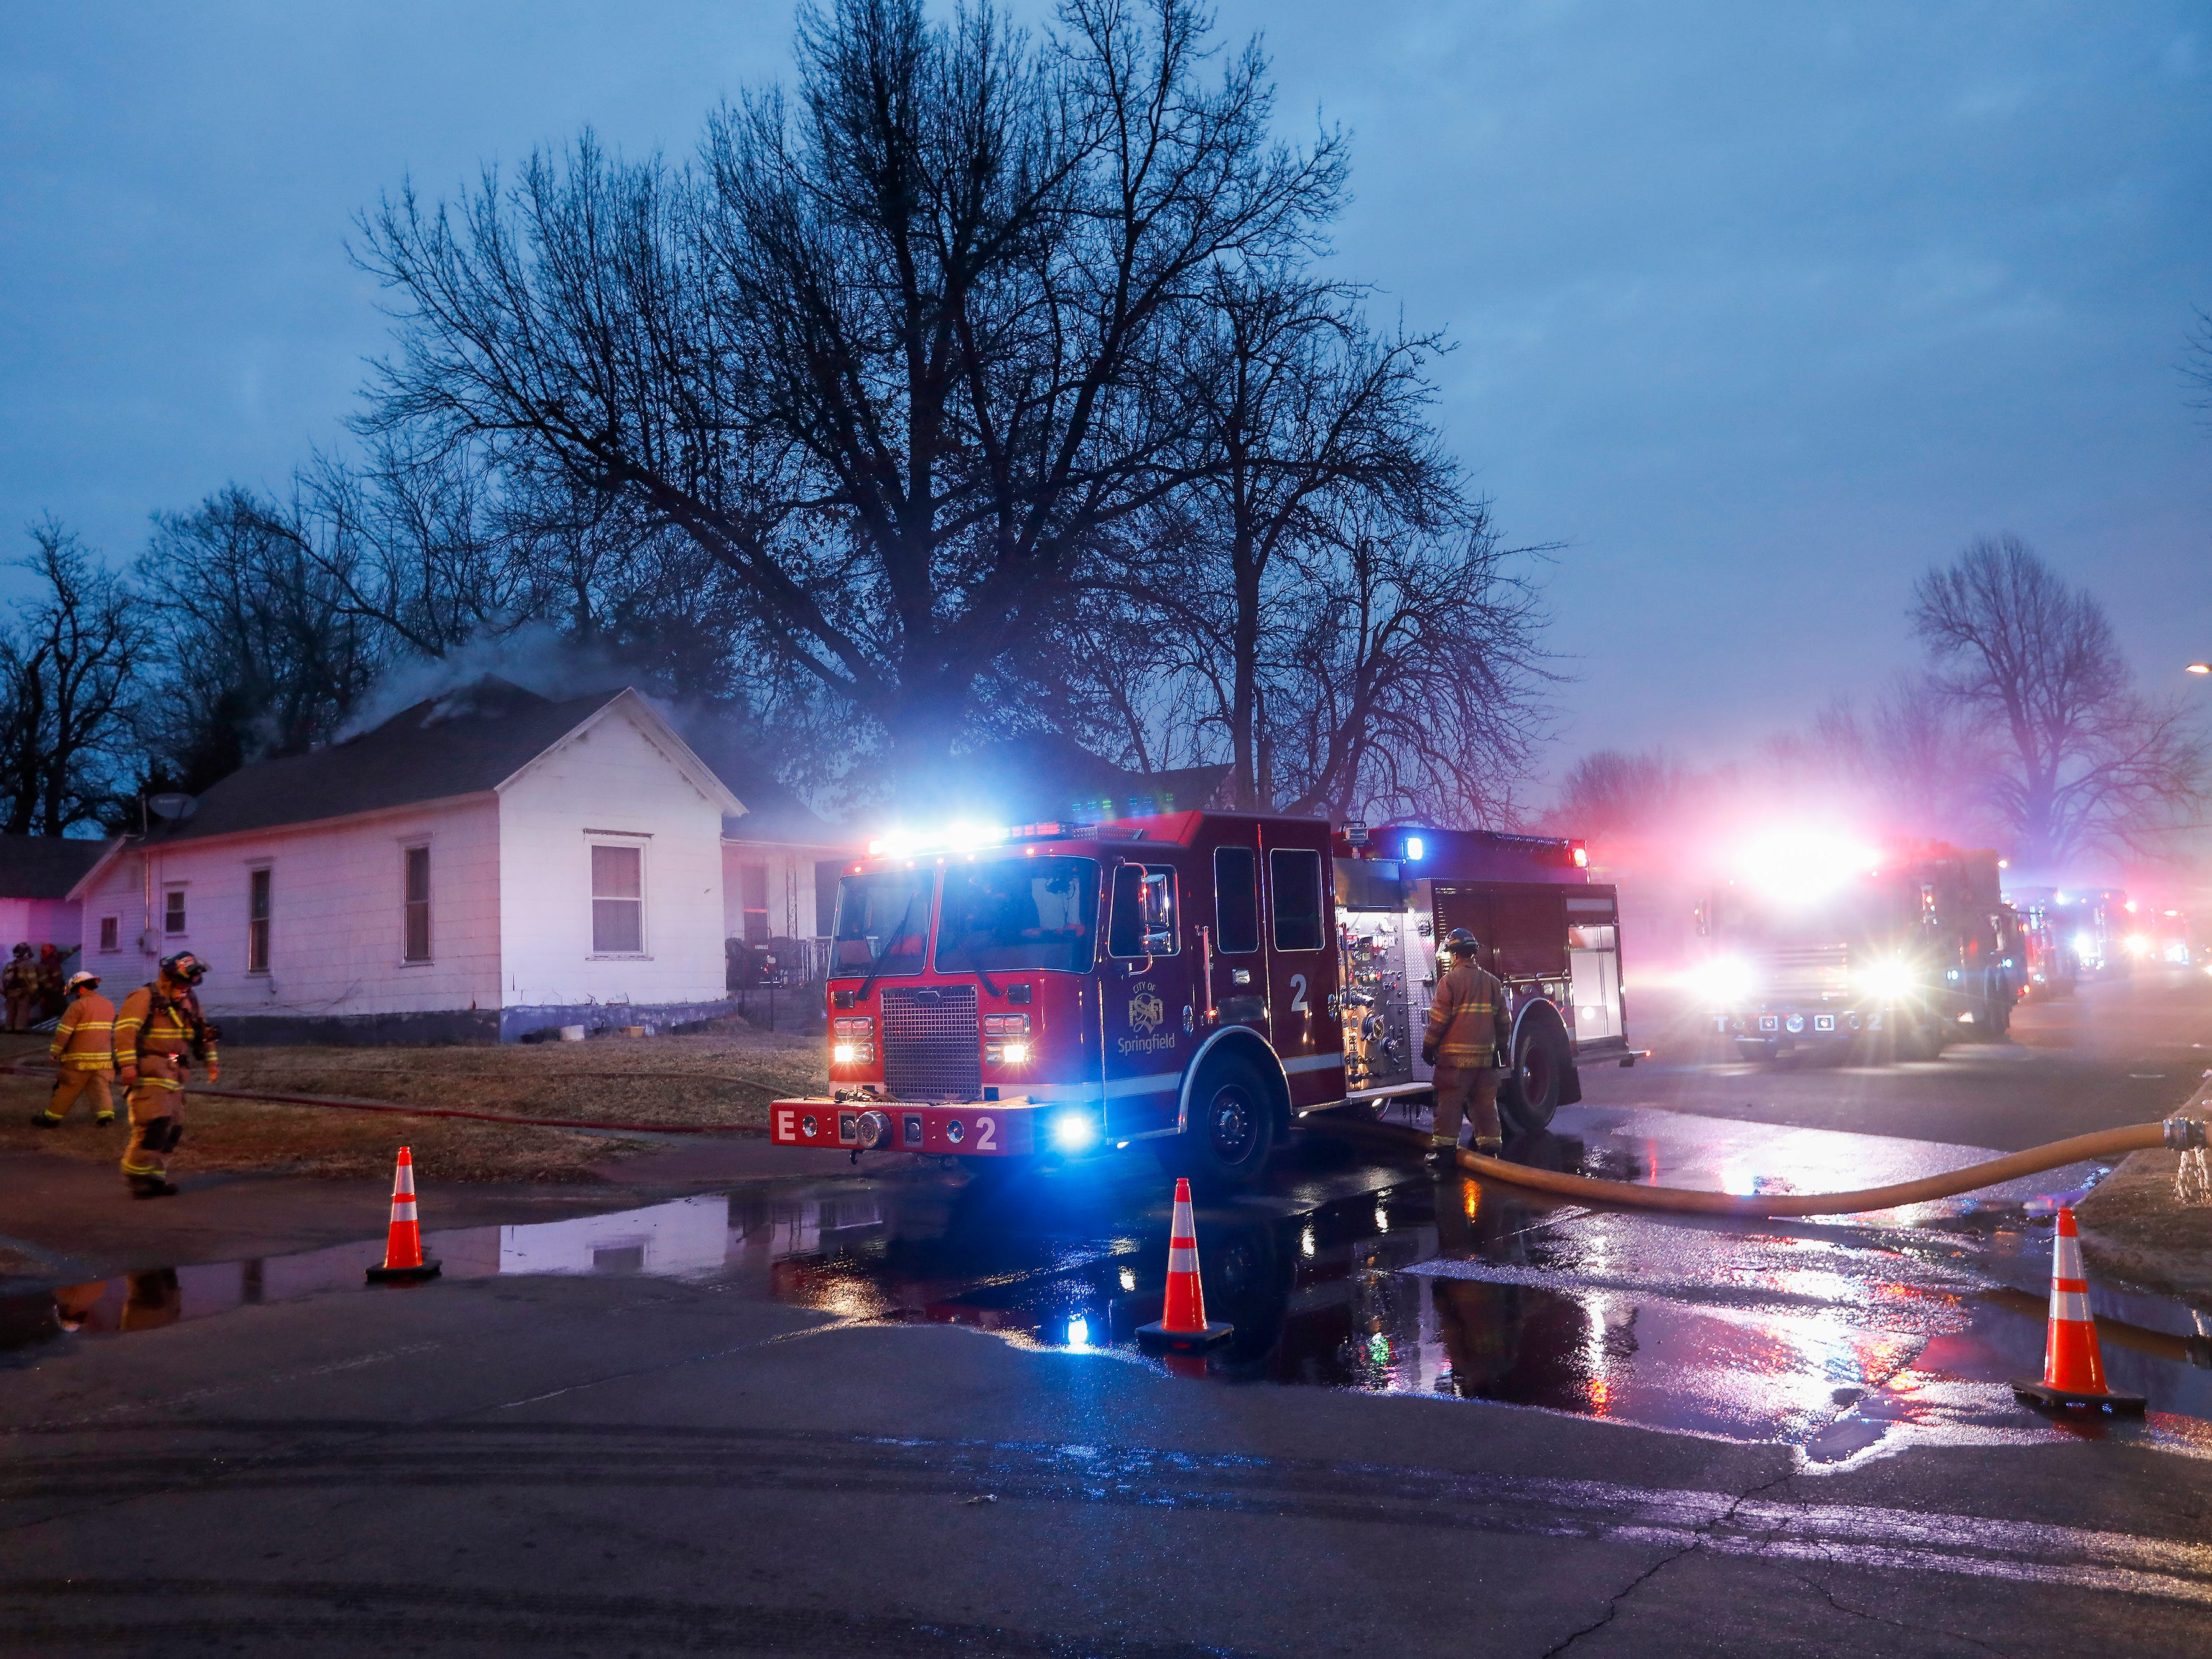 Firefighters work to extinguish a fire that started in the attic of a home on the 1000 block of Hovey Street on Tuesday, Jan. 29, 2019. The homeowners were home at the time of the fire and got out without injury.